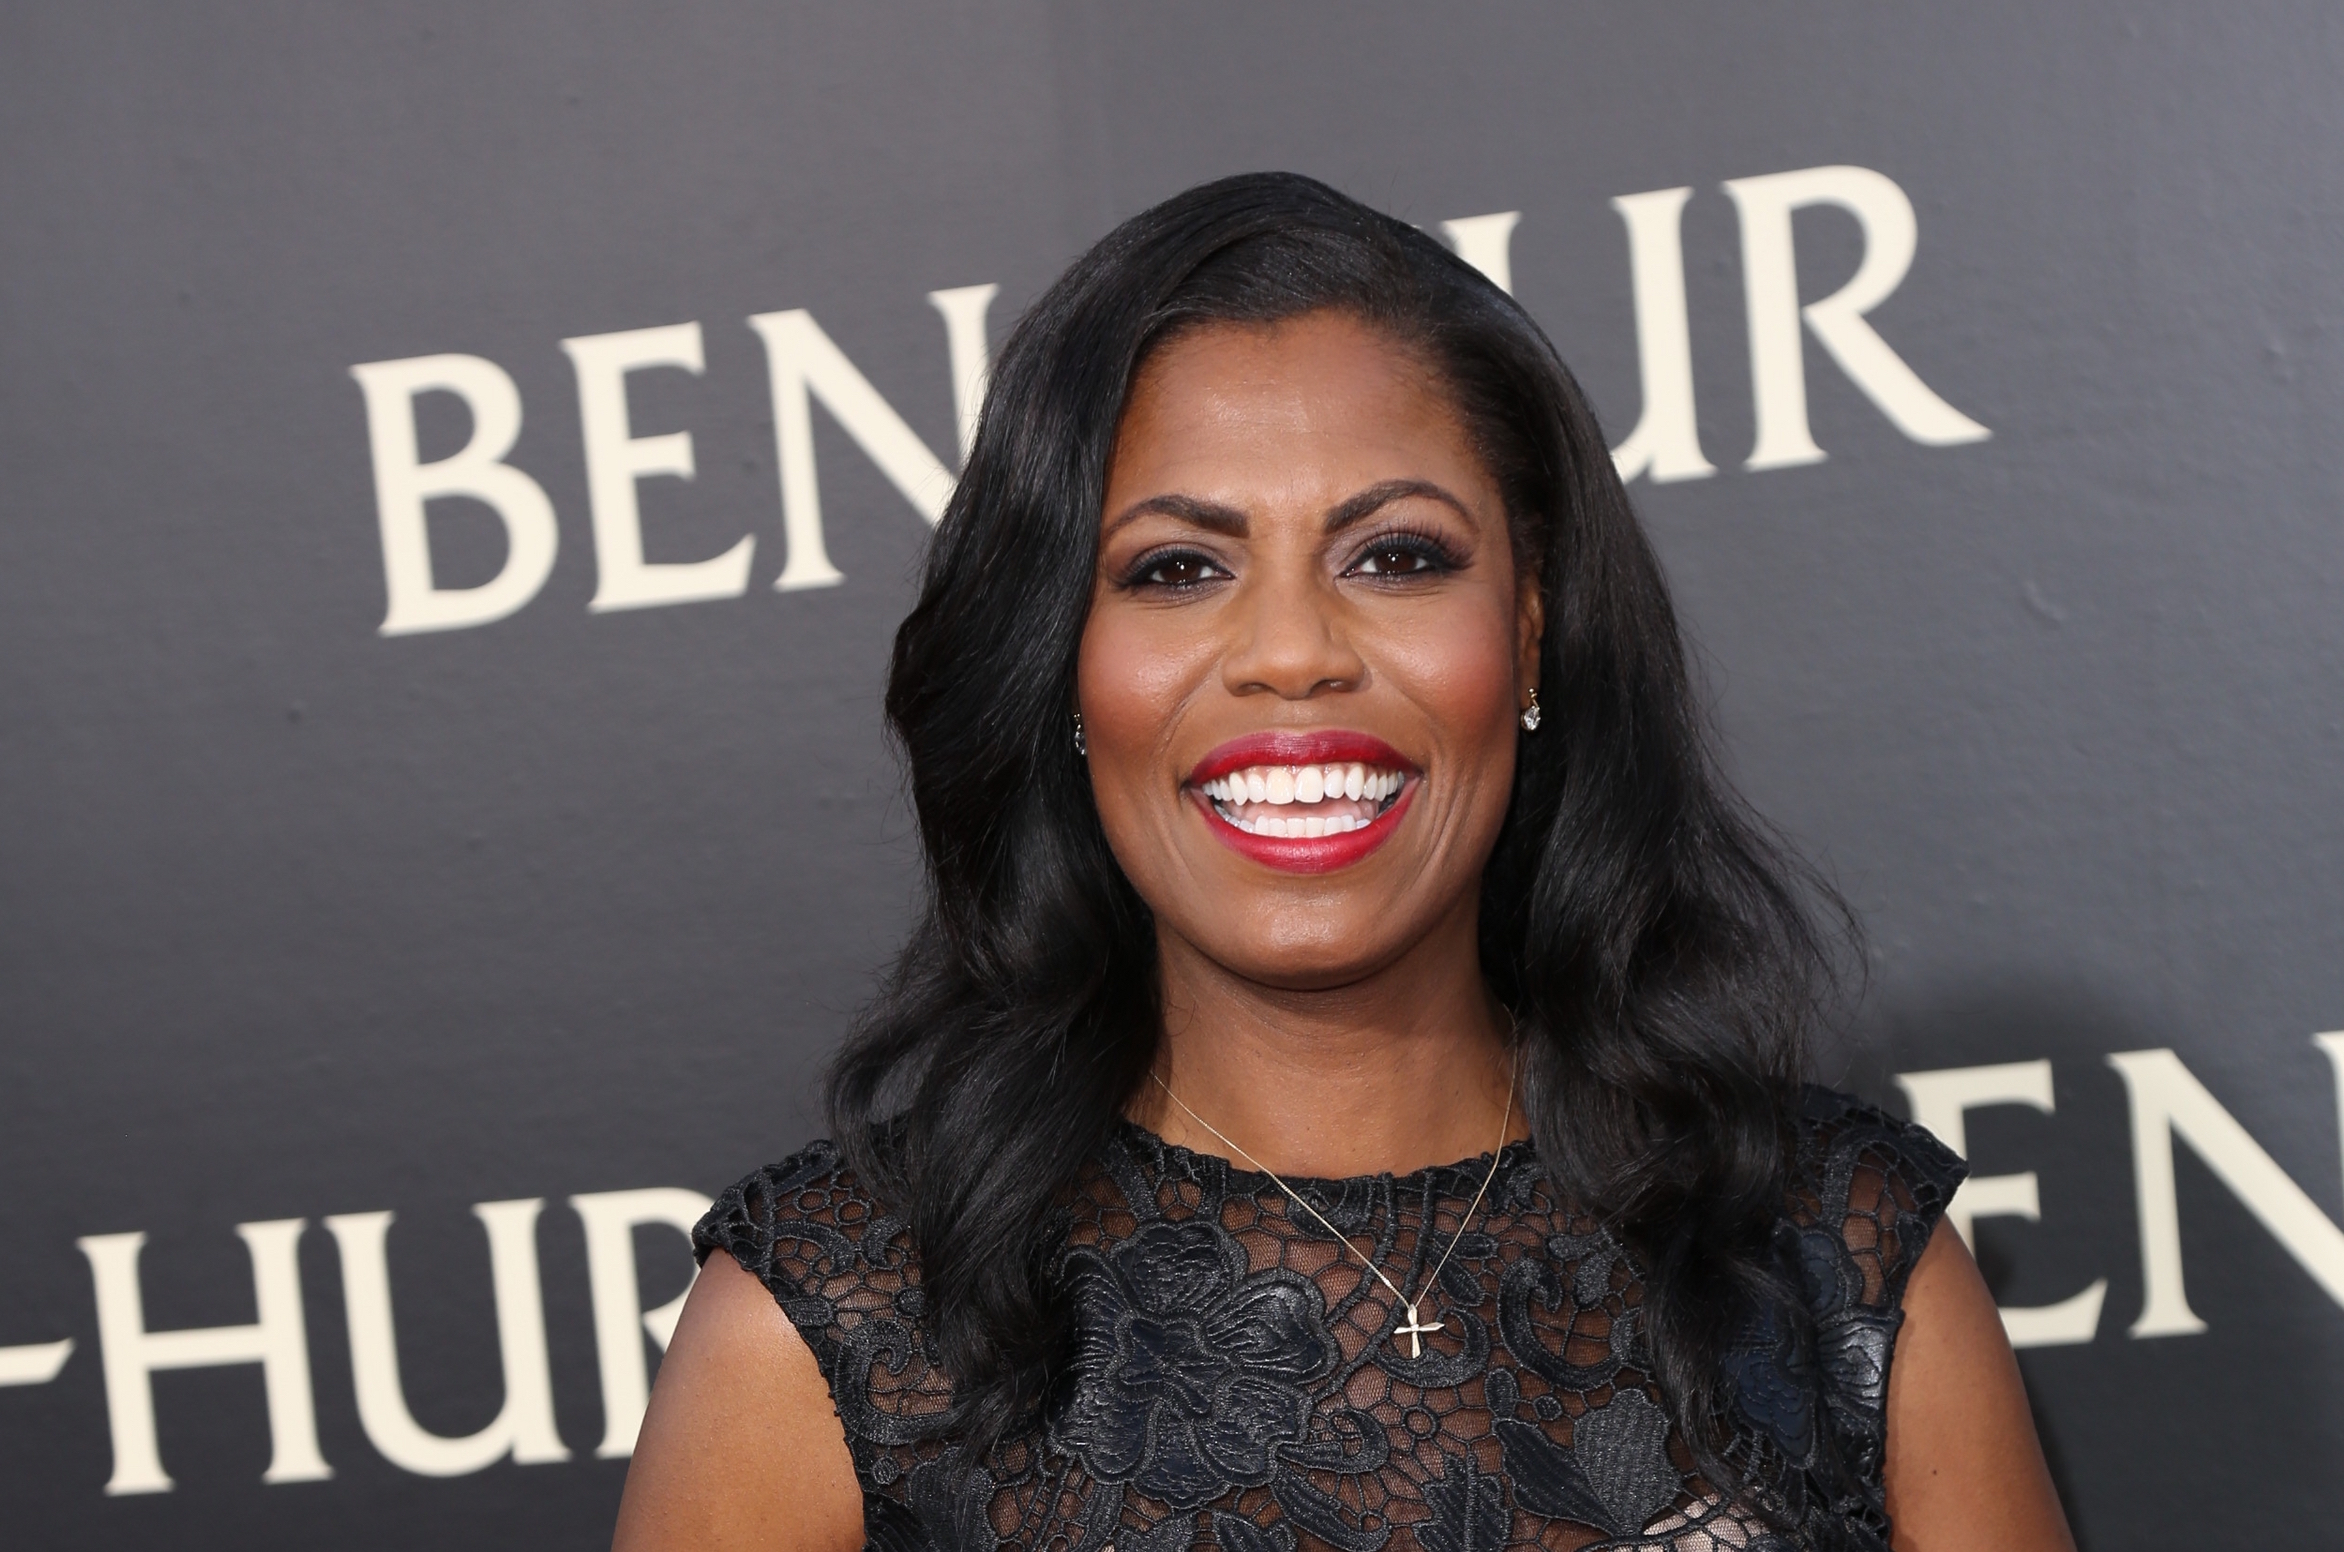 """08/16/2016 - Omarosa Manigault - """"Ben-Hur"""" Los Angeles Premiere - Arrivals - TCL Chinese Theatre IMAX, Hollywood & Highland, 6925 Hollywood Boulevard - Hollywood, CA, USA - Keywords: Vertical, Adventure, Drama, Movie Premiere, Red Carpet Event, Arrival, Attending, People, Person, Portrait, Photography, Film Industry, Arts Culture and Entertainment, Celebrity, Celebrities, TCL Chinese Theater, LightWorkers Media, Metro-Goldwyn-Mayer (MGM), Paramount Pictures See, Los Angeles California Orientation: Portrait Face Count: 1 - False - Photo Credit: Guillermo Proano / PR Photos - Contact (1-866-551-7827) - Portrait Face Count: 1"""